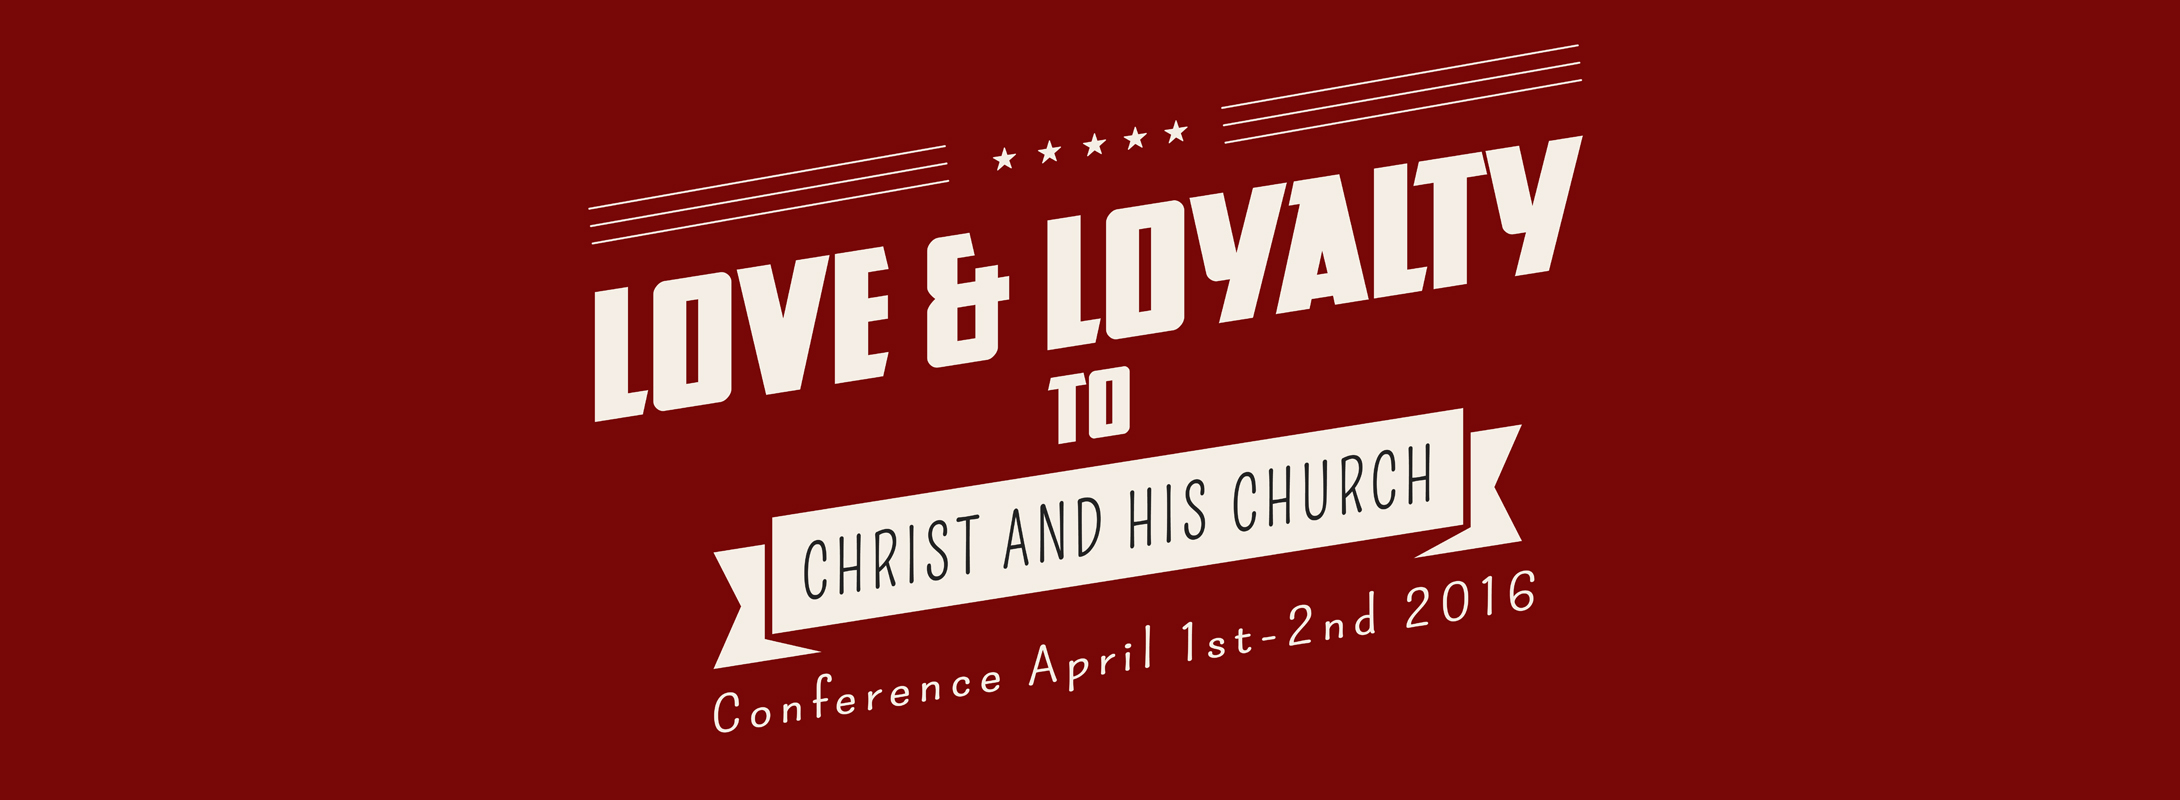 Love and Loyalty to Christ and His Church